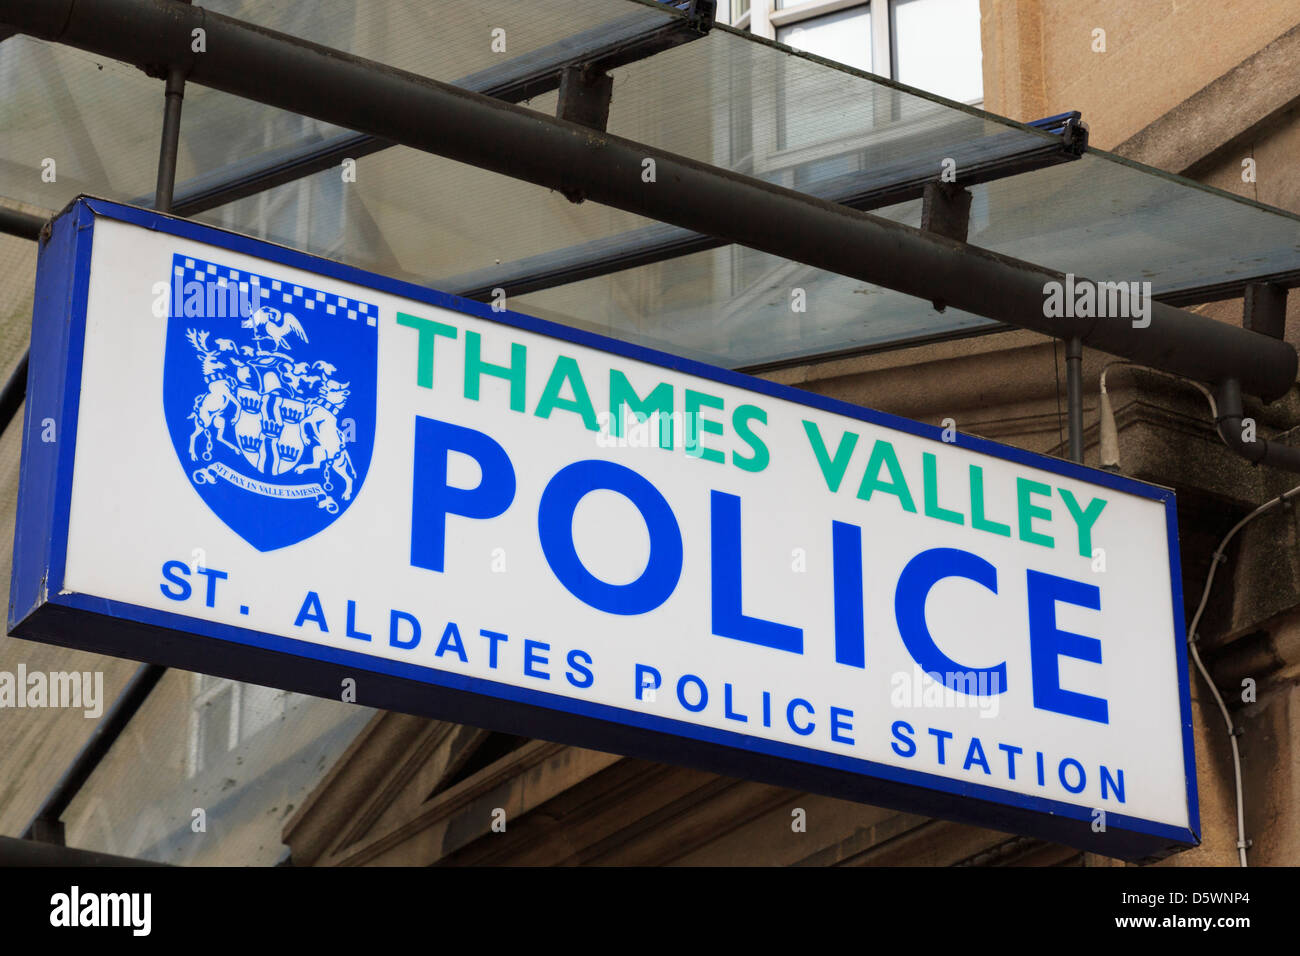 Thames Valley Police sign outside St Aldates police station in Oxford, Oxfordshire, England, UK - Stock Image